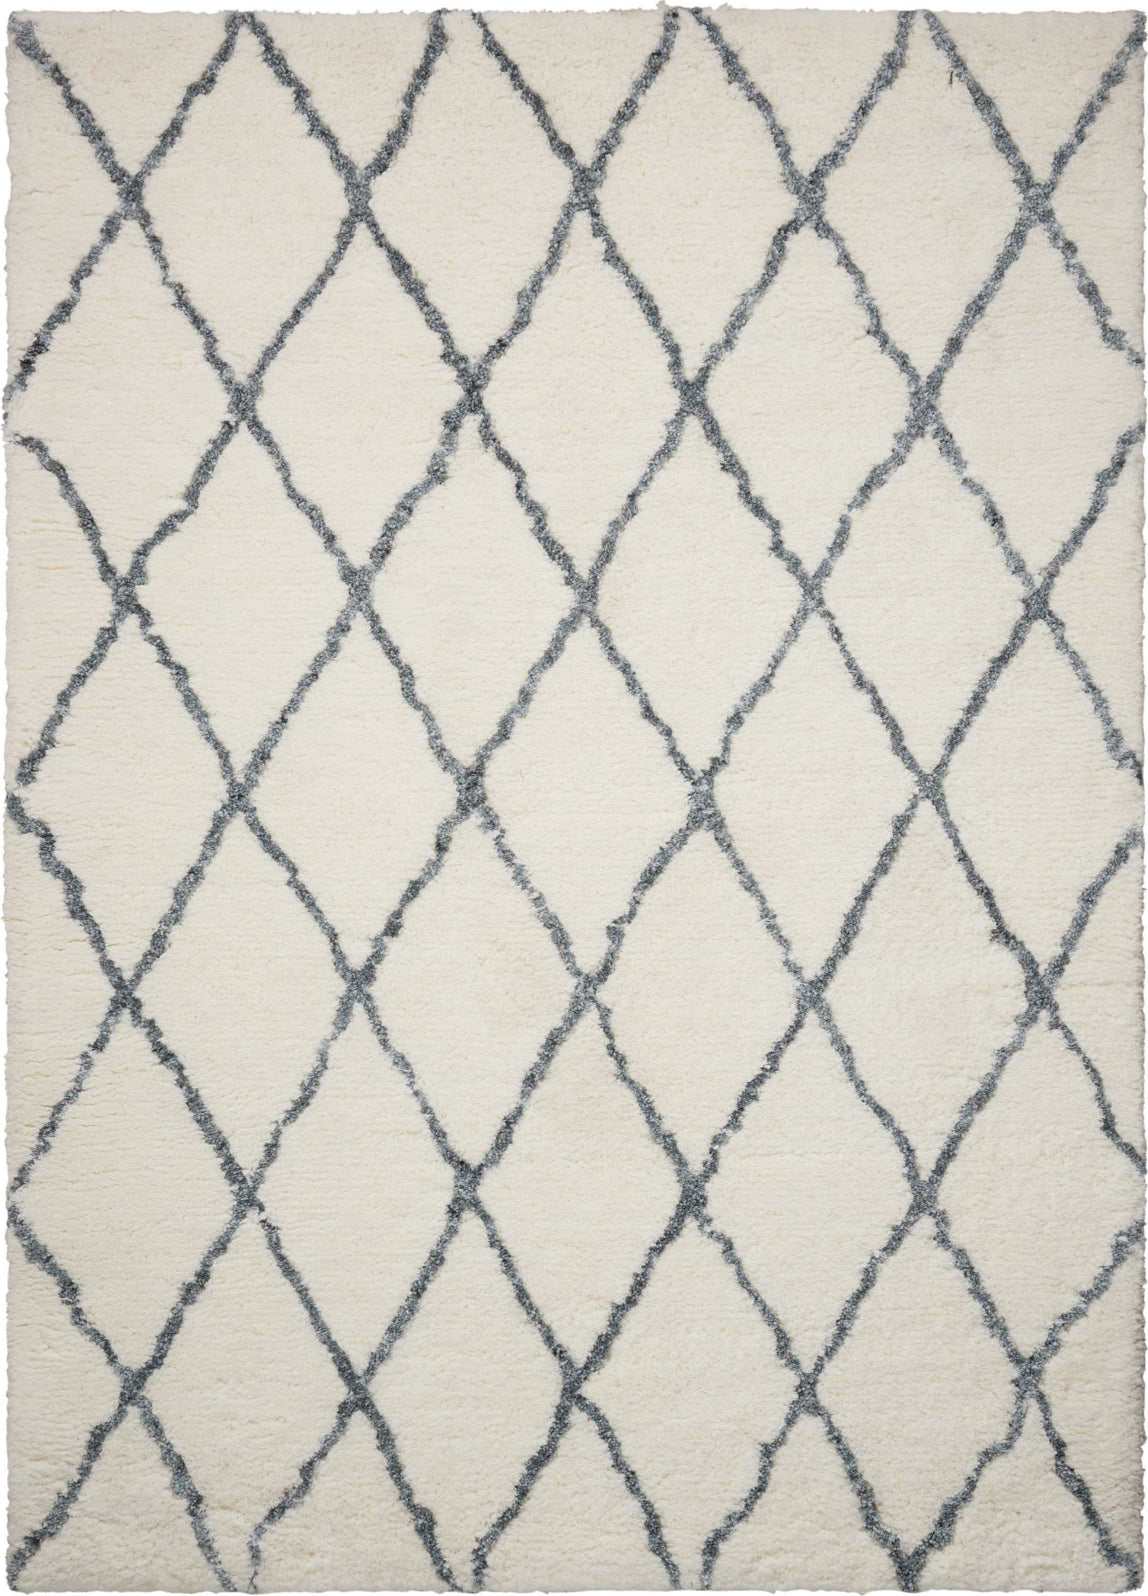 Nourison Galway GLW11 Ivory/Grey Area Rug main image